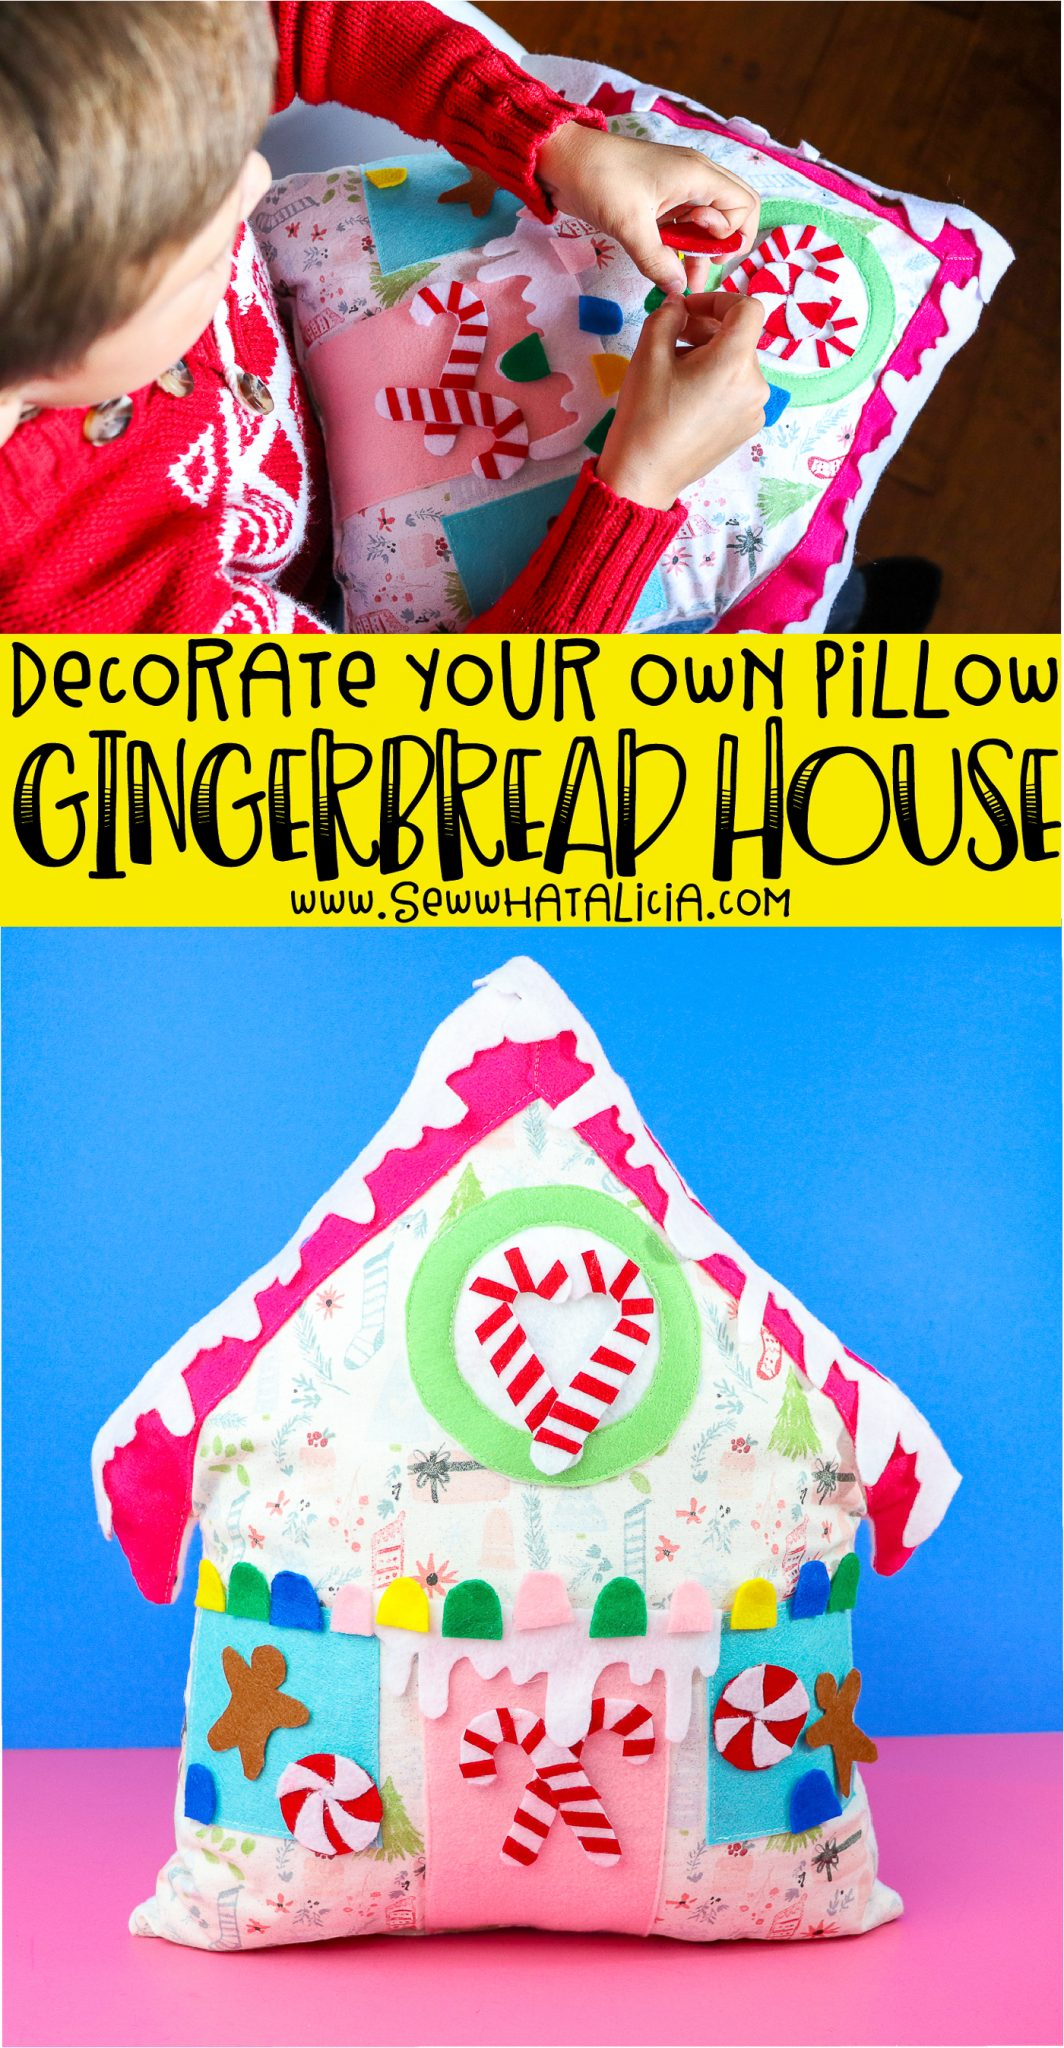 child holding pillow, text reading decorate your own pillow gingerbread house, close up of decorated gingerbread house pillow